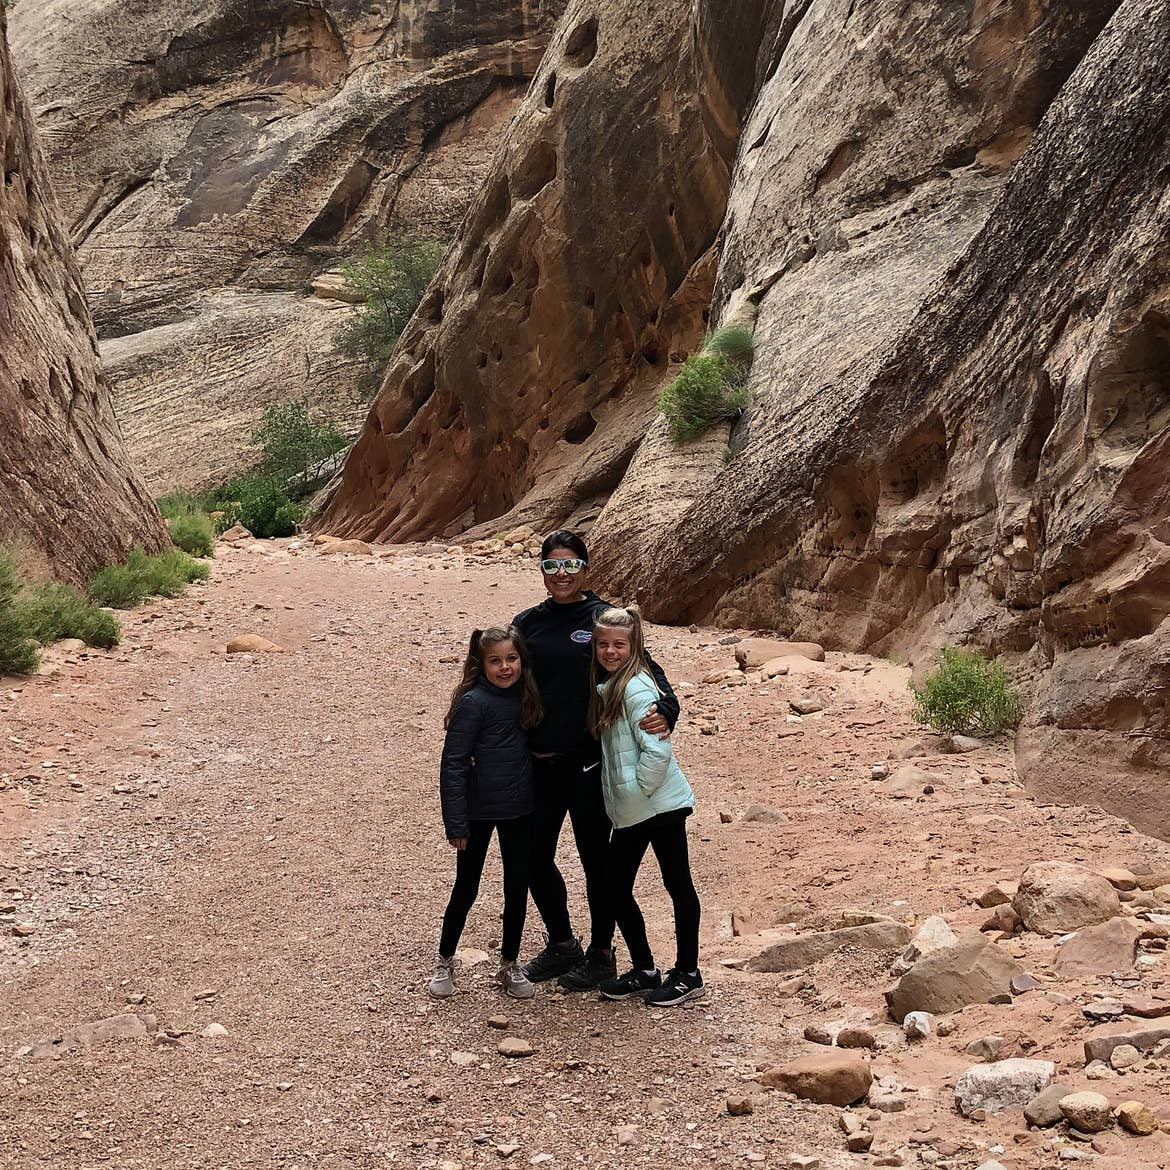 Chris (middle) stands with Kyndall (right) and Kyler (left) in front of rock formations at Capital Gorge.